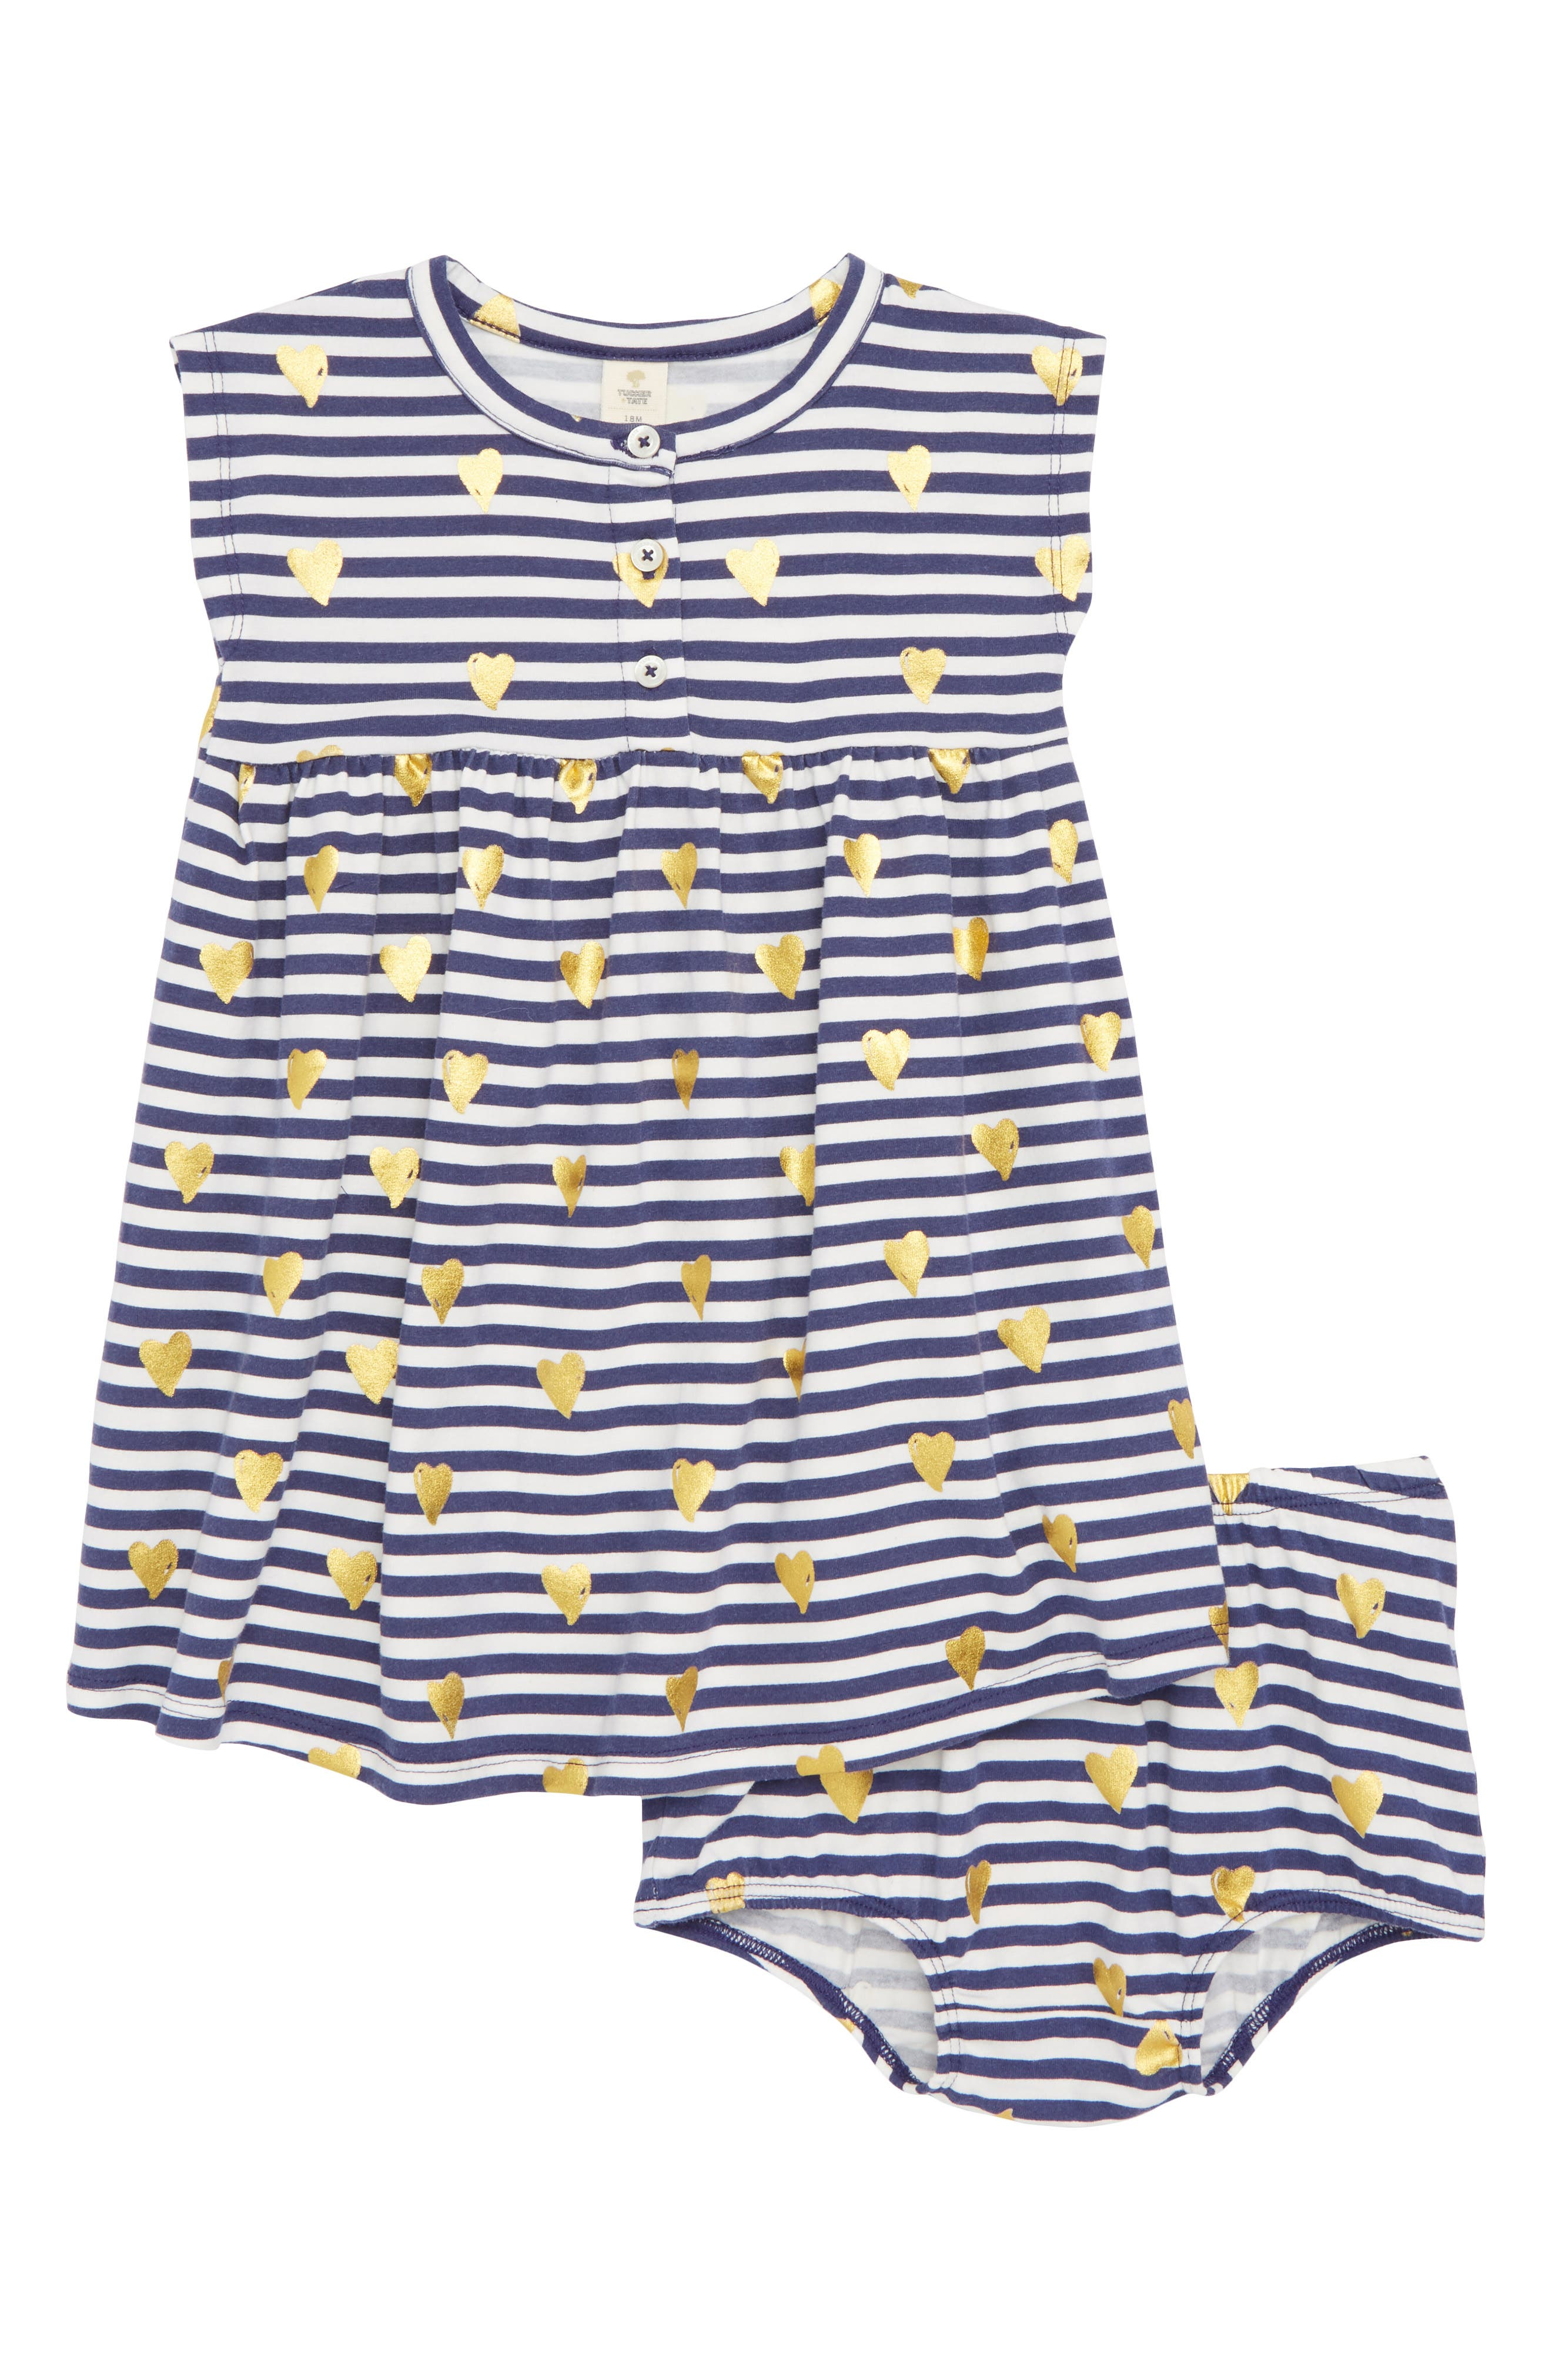 Essential Print Knit Dress,                             Main thumbnail 1, color,                             Navy Ribbon Striped Heart